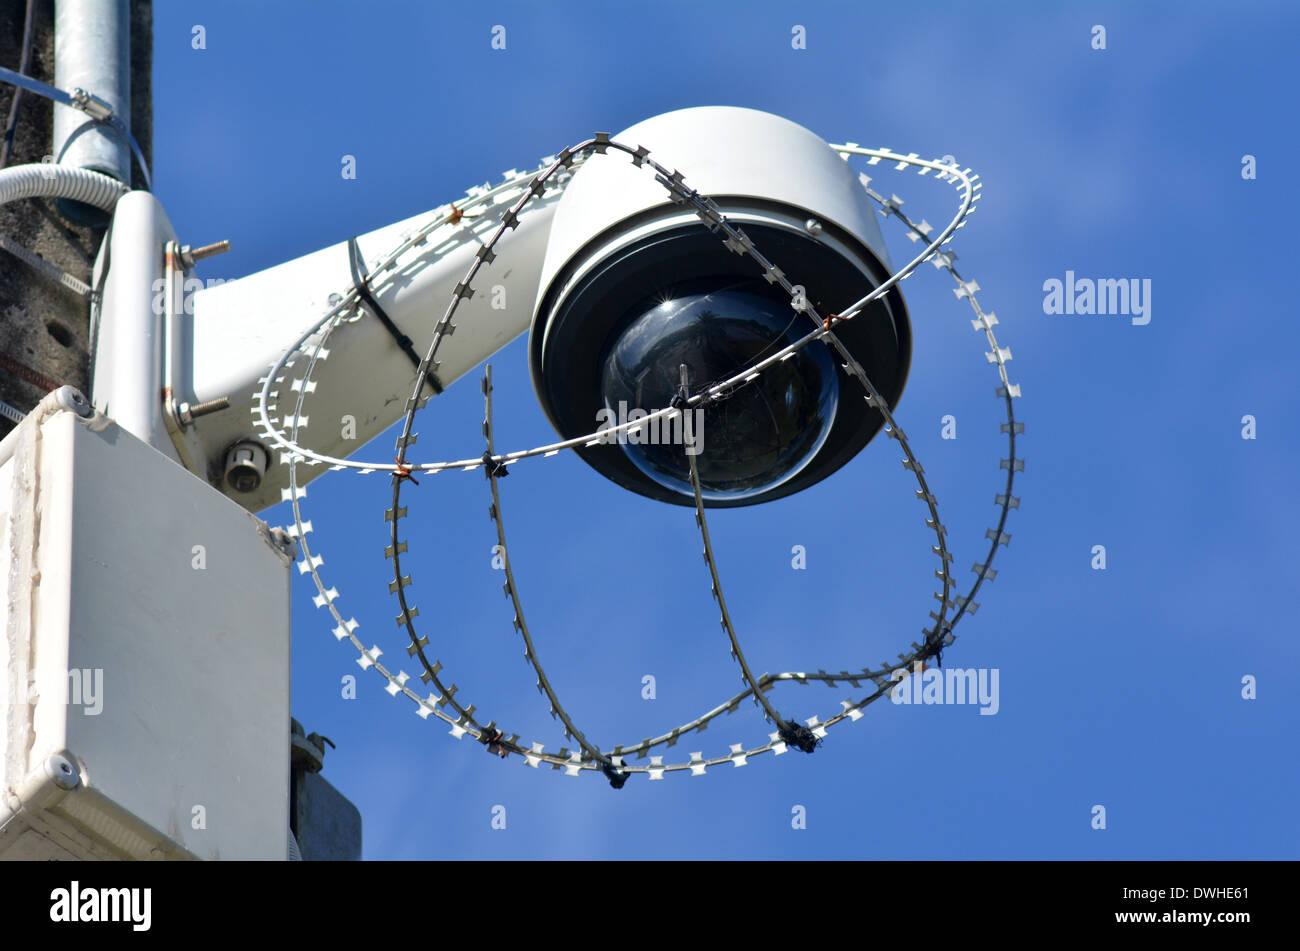 One security surveillance camera protected with barbed wire against vandalism and crime. concept photo of security. - Stock Image